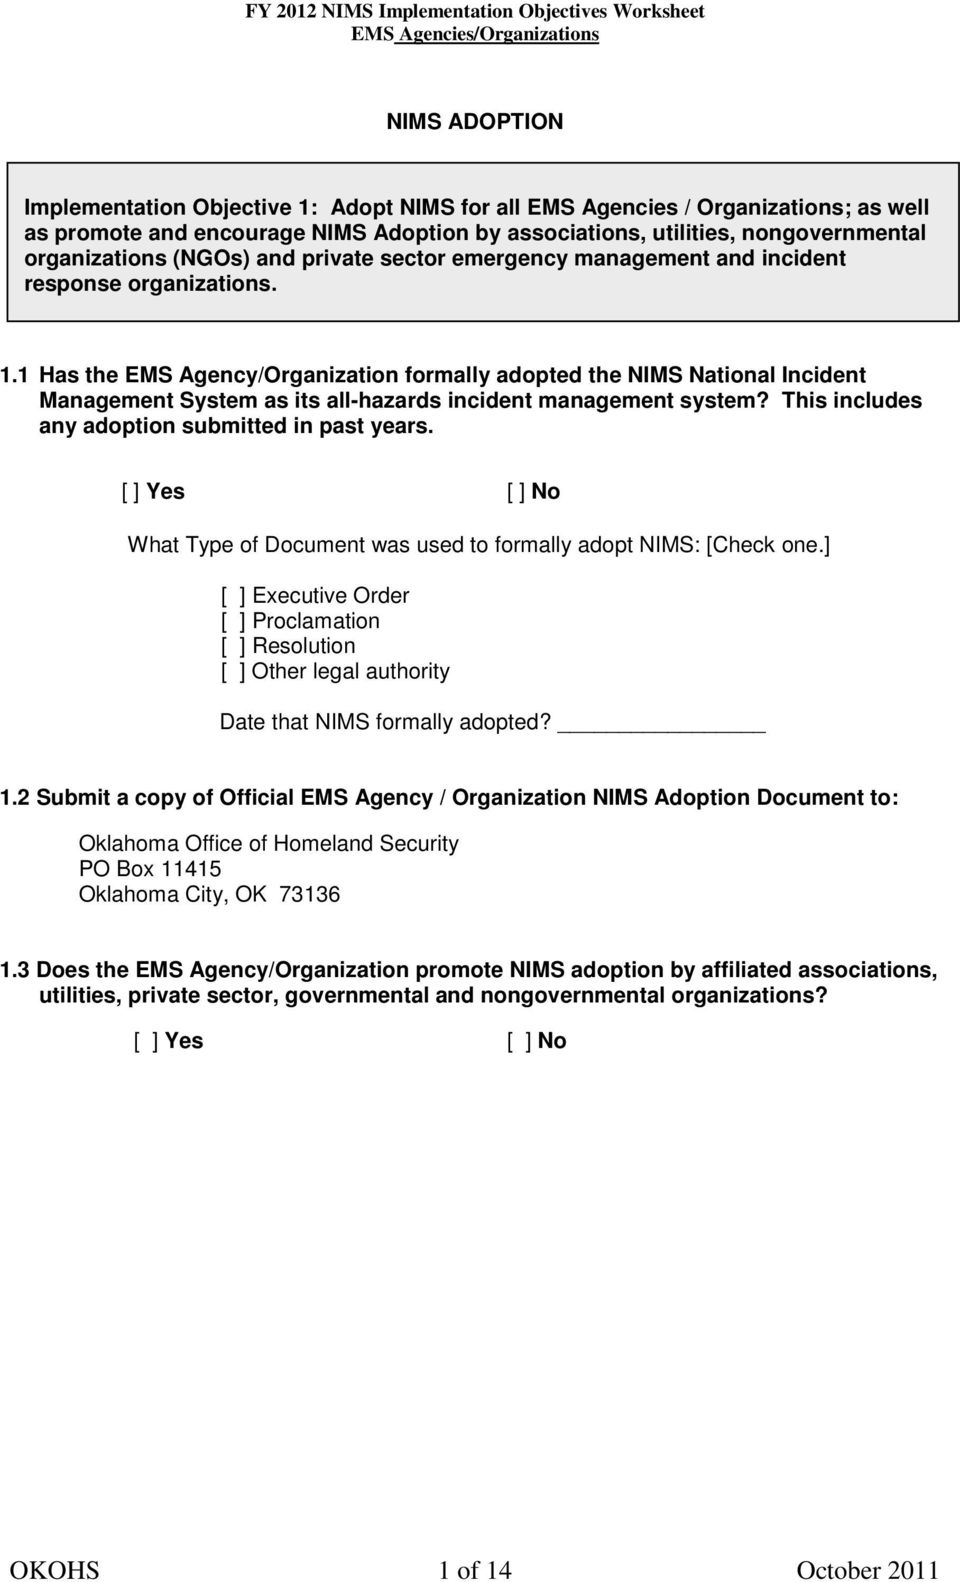 1 Has the EMS Agency/Organization formally adopted the NIMS National Incident Management System as its all-hazards incident management system? This includes any adoption submitted in past years.